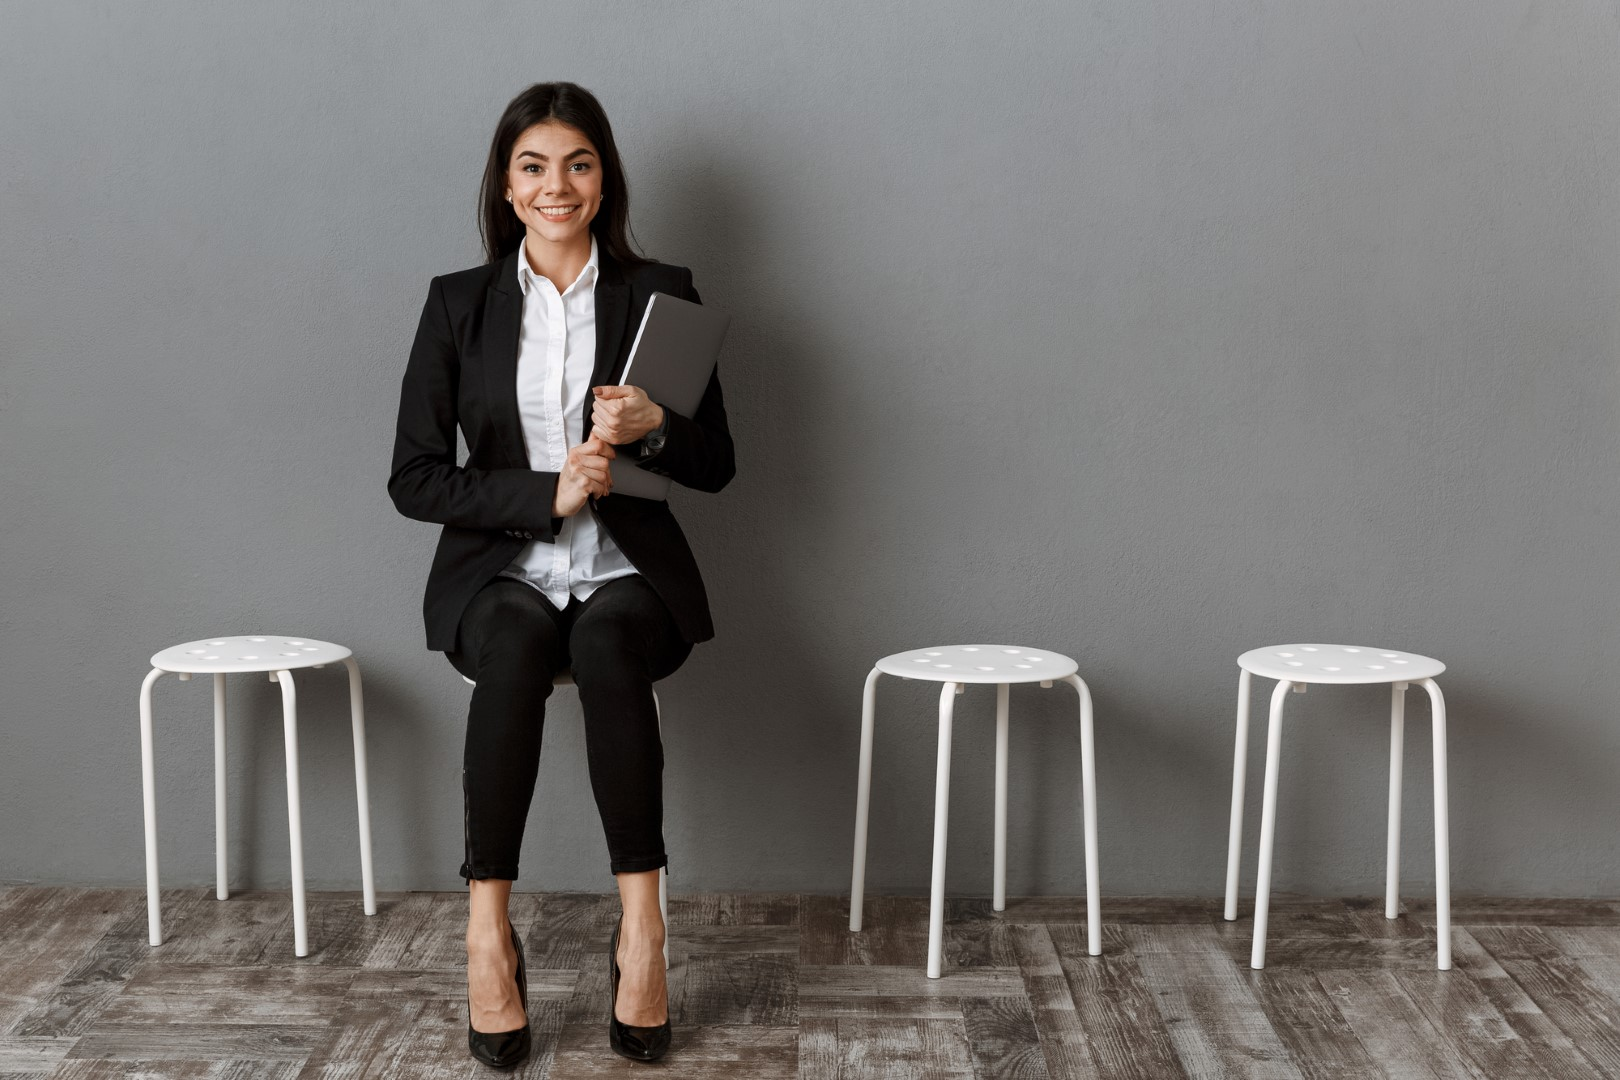 How to Prepare for Your Upcoming Interview